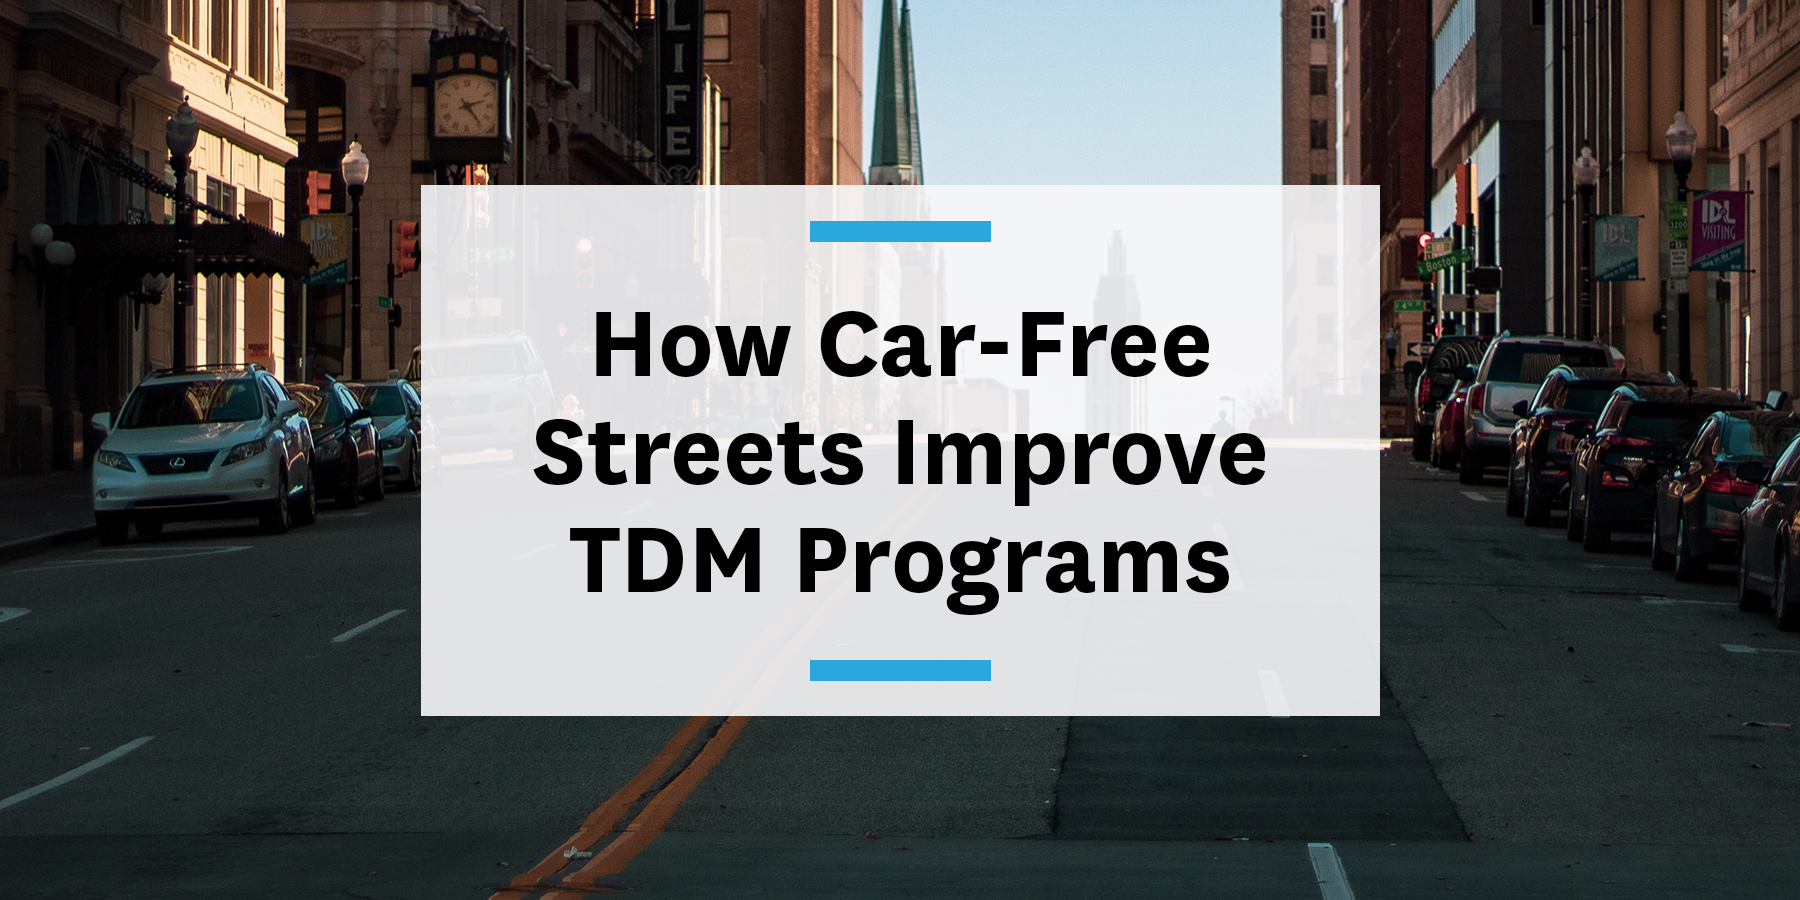 Car-free streets impact on TDM programs improving buses, walking, and biking conditions